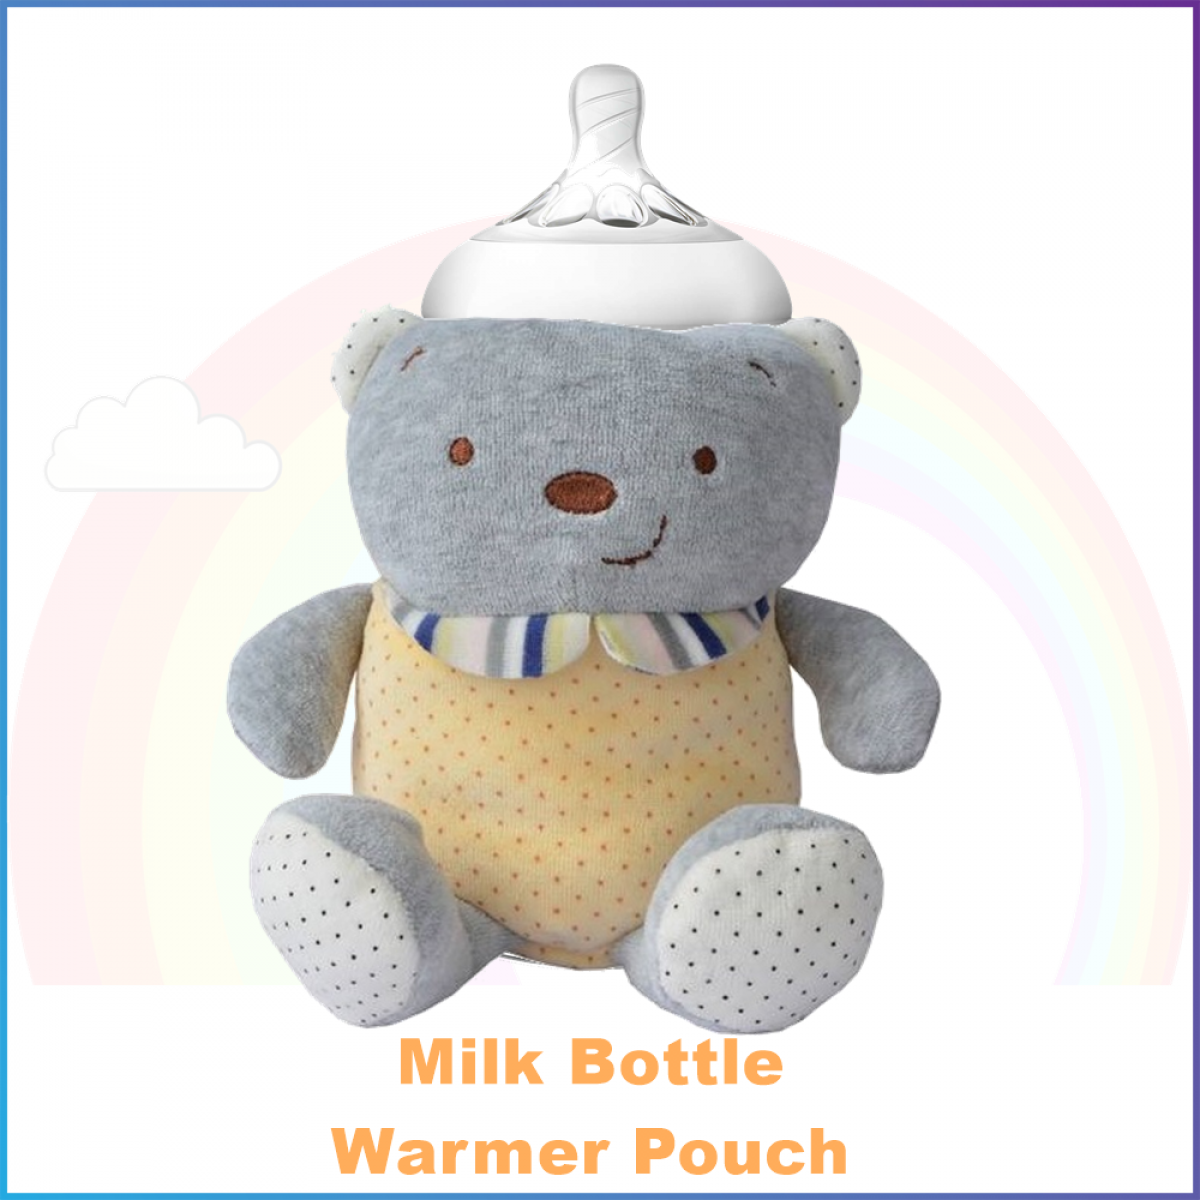 Warmer Pouch for Milk Bottle - Yellow Polka Bear